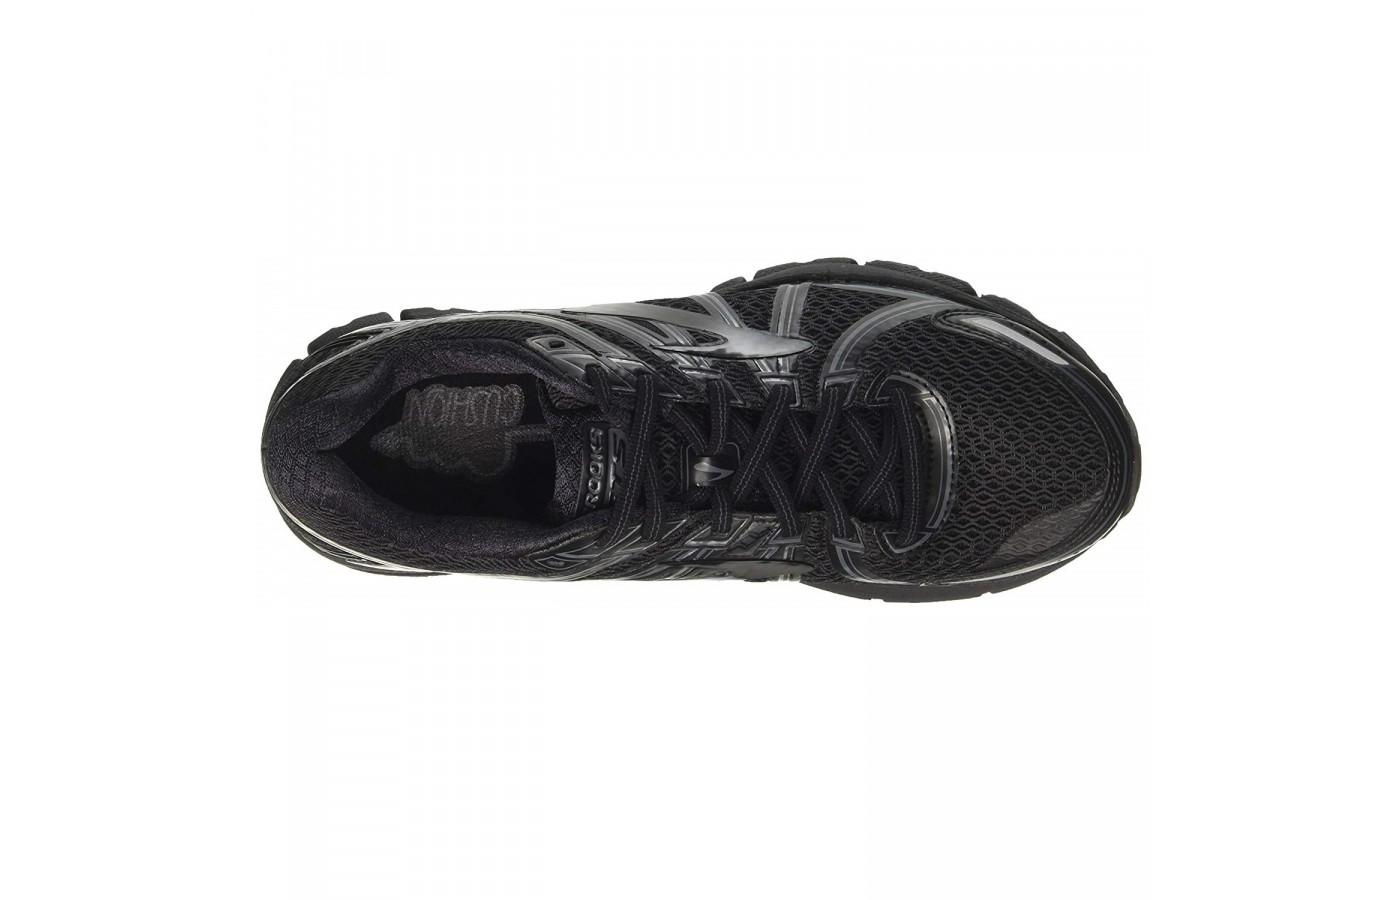 The Brooks Adrenaline GTS 17 offers a lightweight design to help the runner go further.